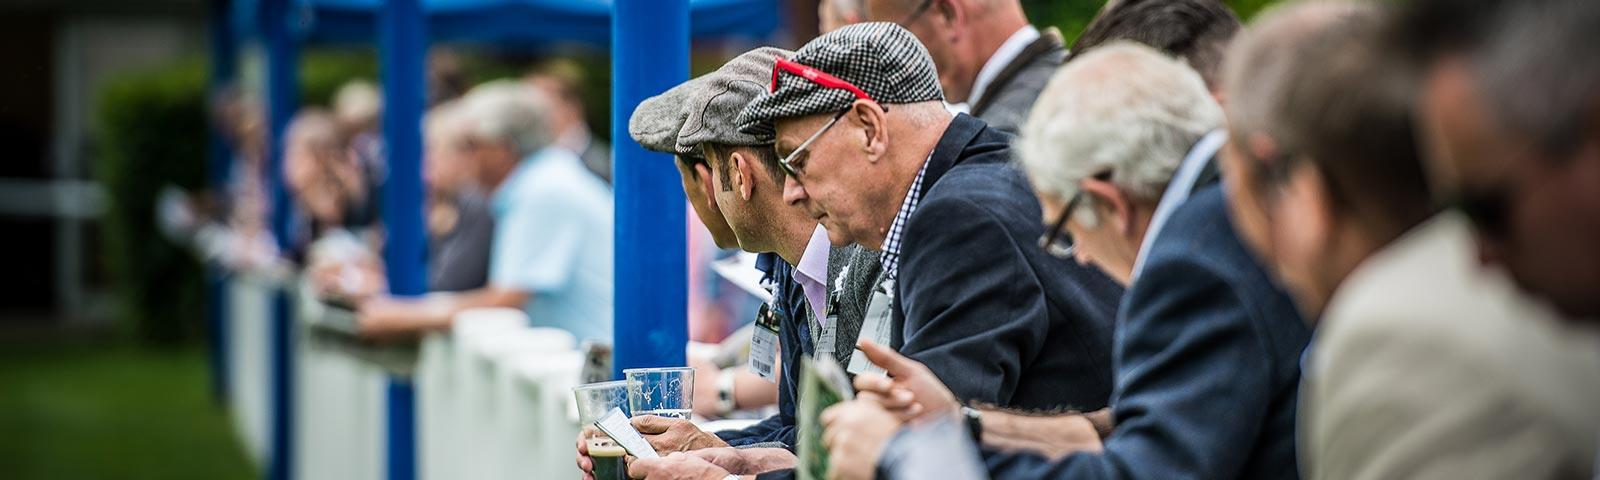 Gents in flat caps watching a racing during gentleman's day at Royal Windsor Racecourse